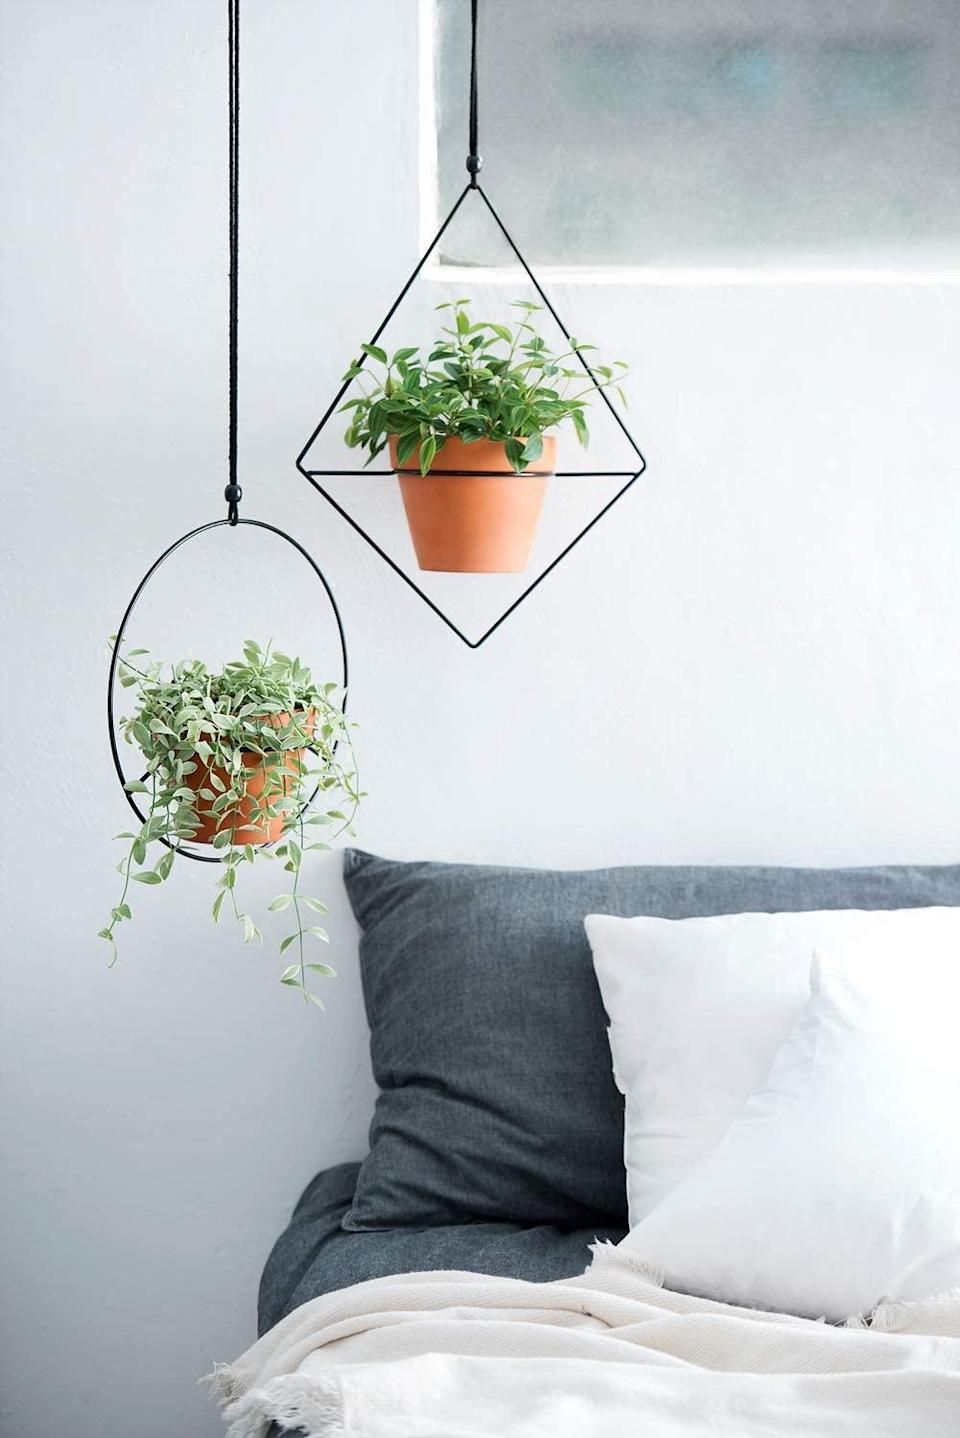 """<h2>Mkono Geometric Metal Plant Hanger Set</h2> <br>If you've got a green thumb and a contemporary sense of style, this black planter duo is for you. Its modern geometric shape sets it apart from other hanging planters, while the metal material has an industrial appeal.<br><br><strong>Mkono</strong> Geometric Metal Plant Hanger Set, $, available at <a href=""""https://amzn.to/39g1uO7"""" rel=""""nofollow noopener"""" target=""""_blank"""" data-ylk=""""slk:Amazon"""" class=""""link rapid-noclick-resp"""">Amazon</a><br>"""